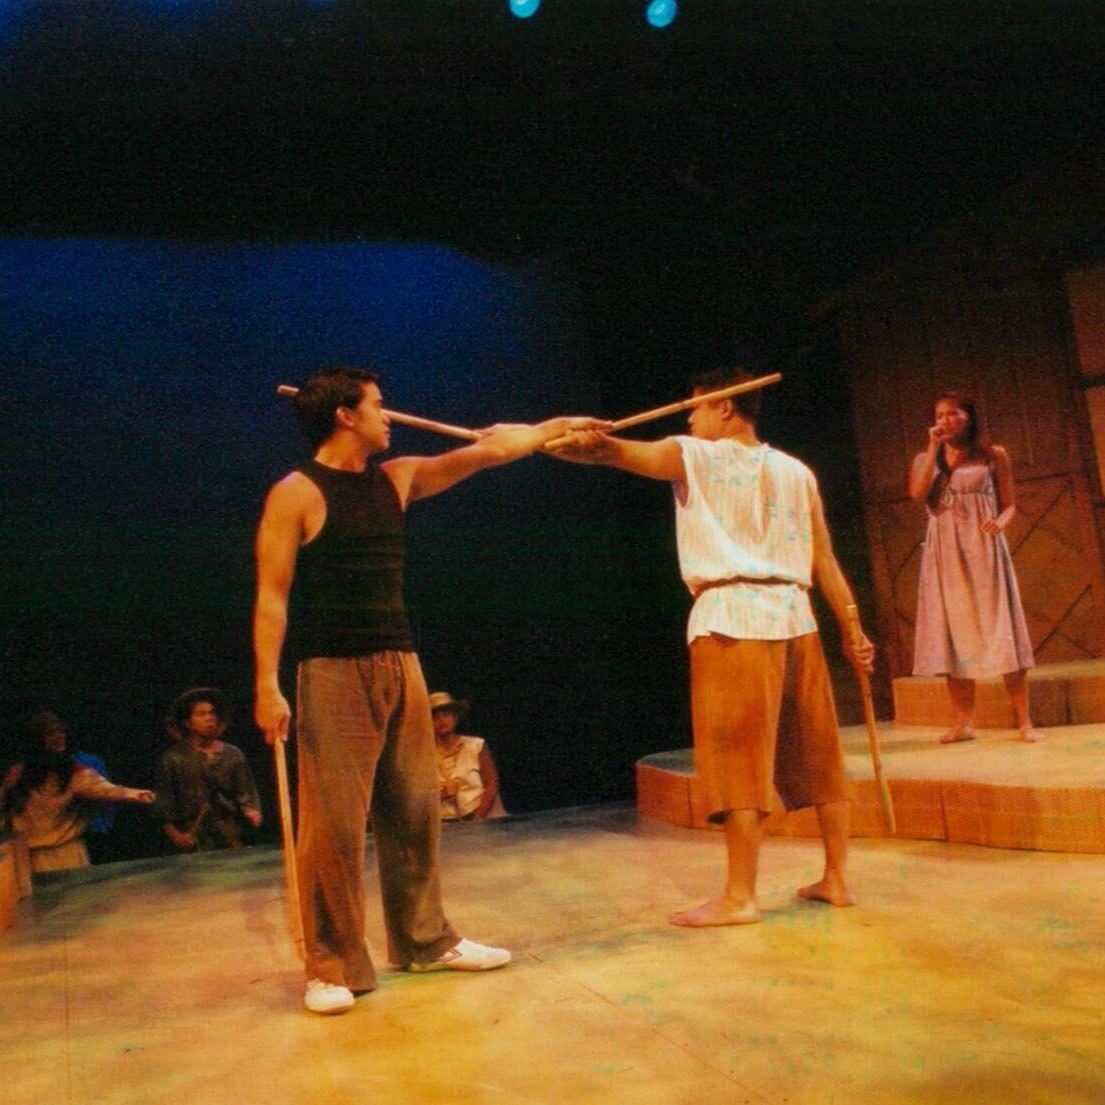 FILIPINO HEARTS - Book by R.A. SHIOMI & ALLEN MALICSIMusic by Kurt MiyashiroLyrics by Kurt Miyashiro and R.A. ShiomiDirected by Mary Beidler Gearen Music direction by Anita RuthSeptember 23rd-October 8th, 2006